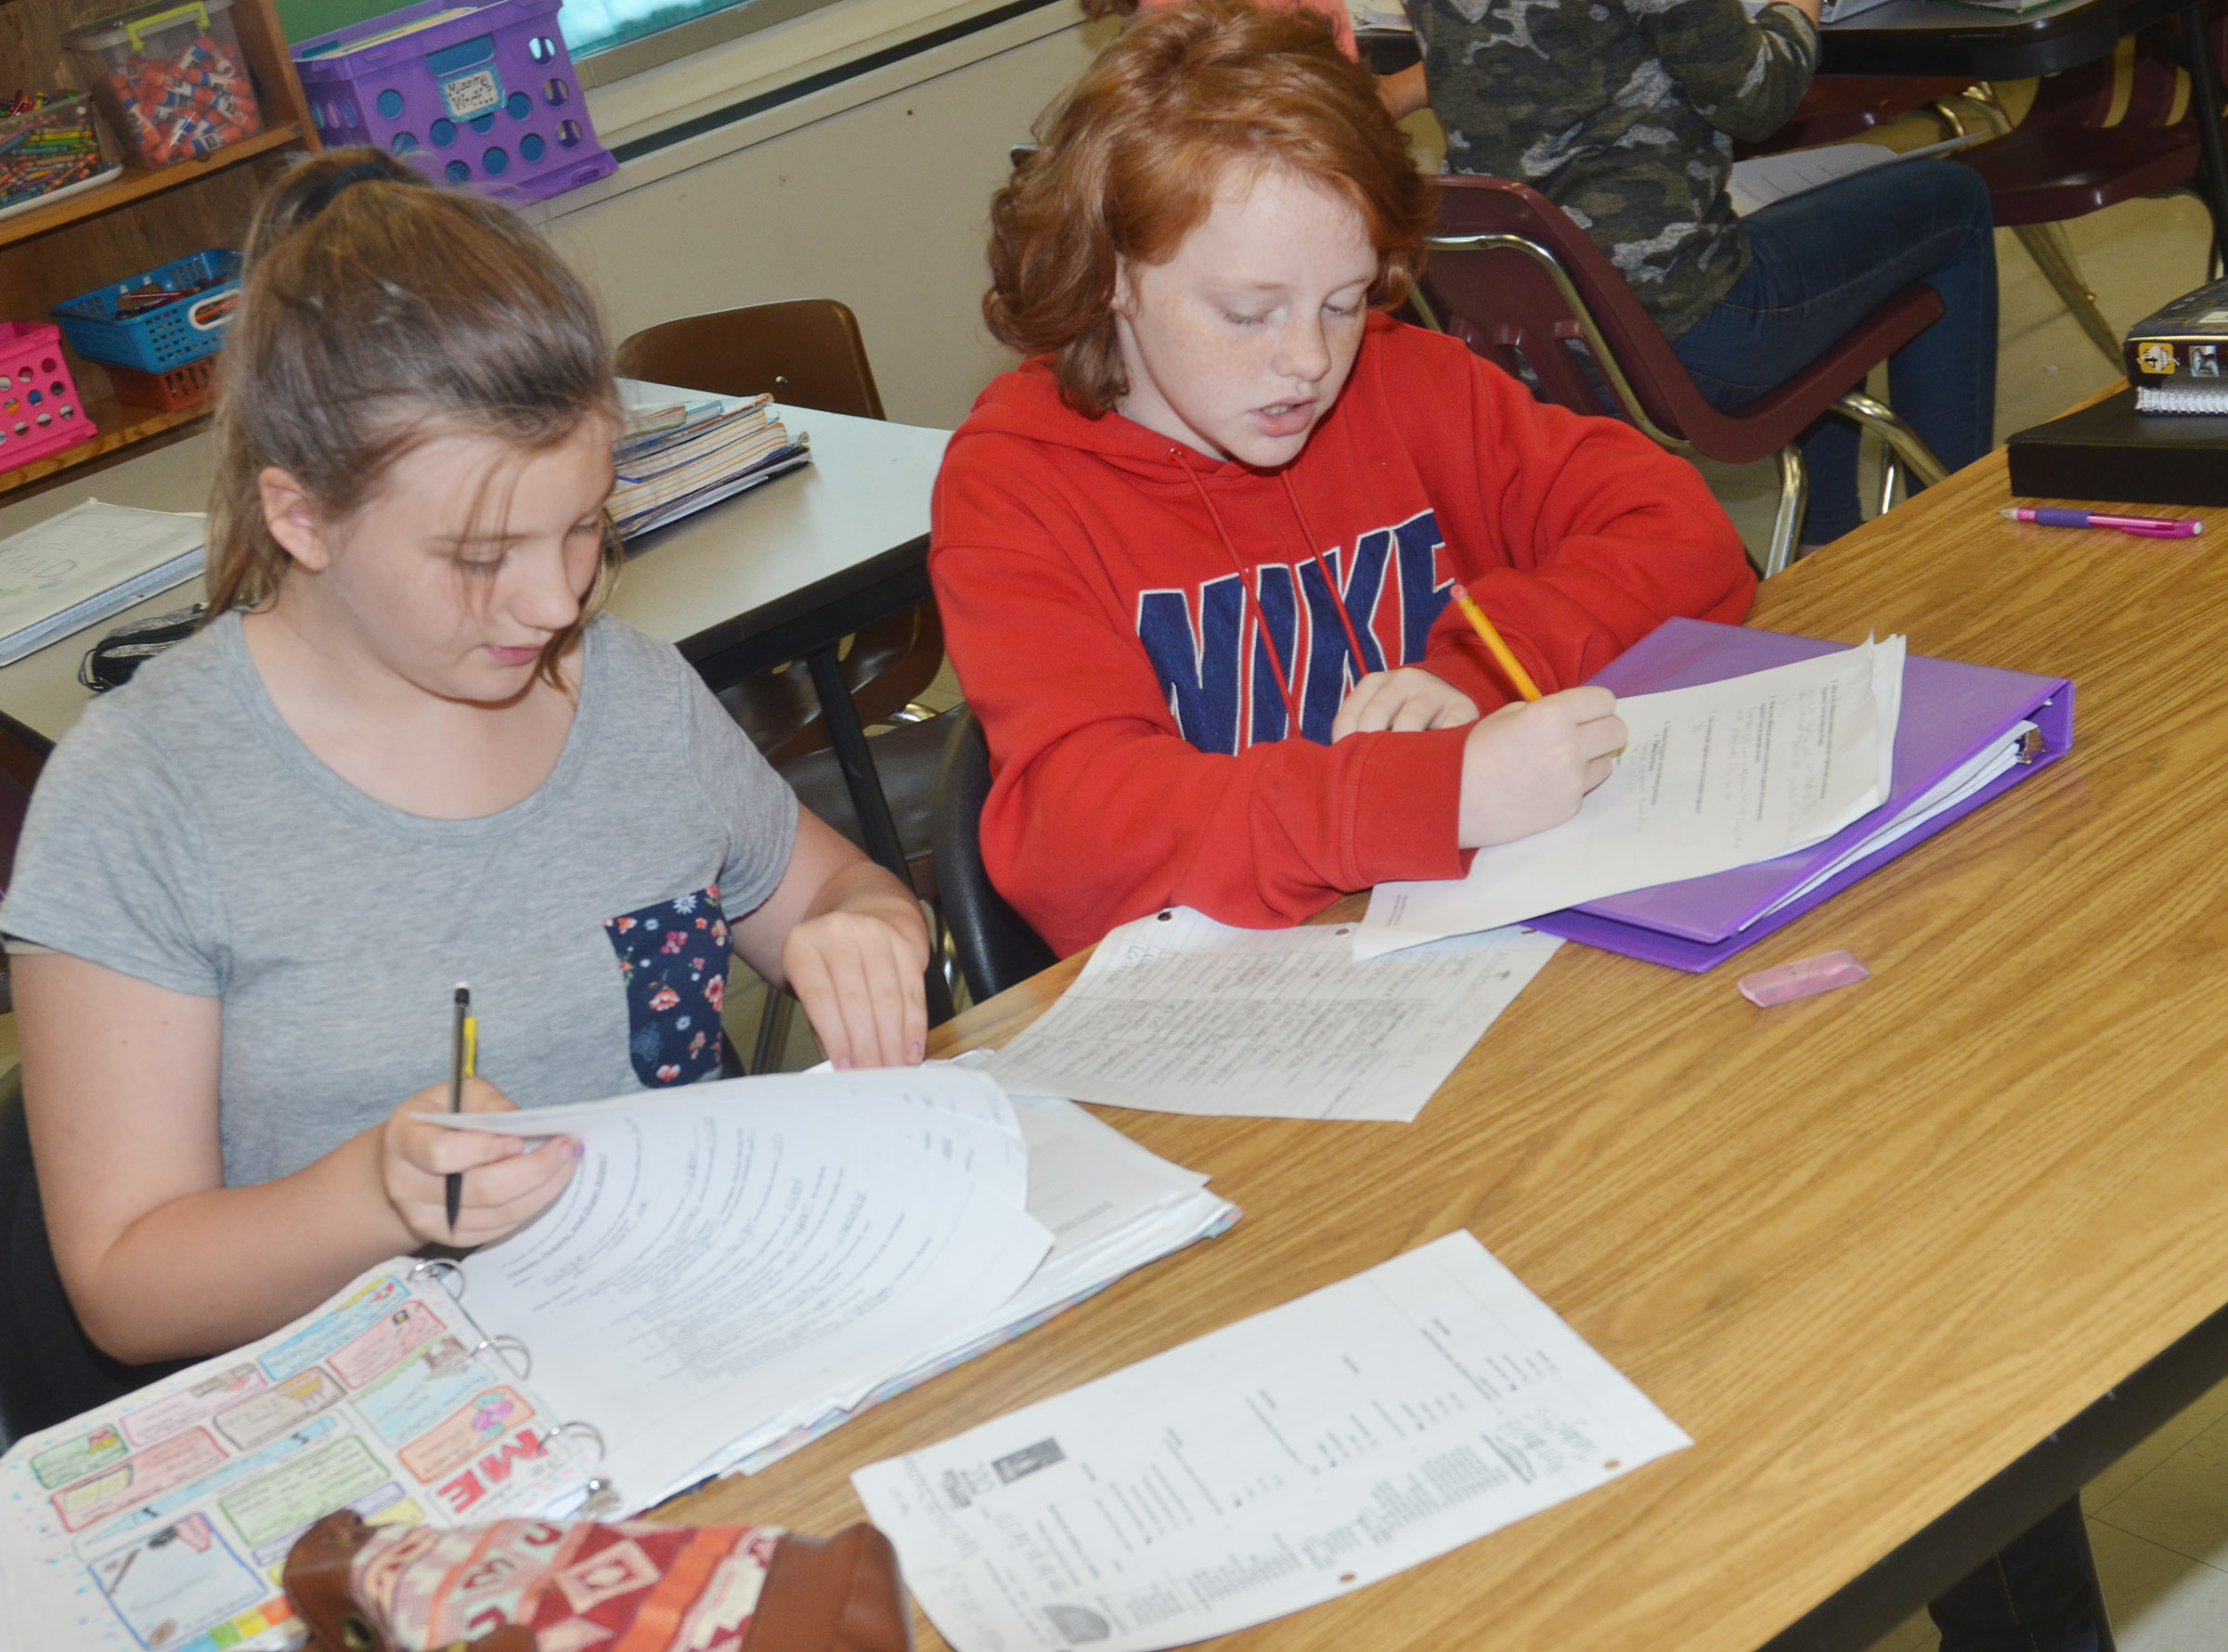 CMS seventh-graders Mikaela Scharbrough, at left, and Haley Gutierrez complete their study guide together.